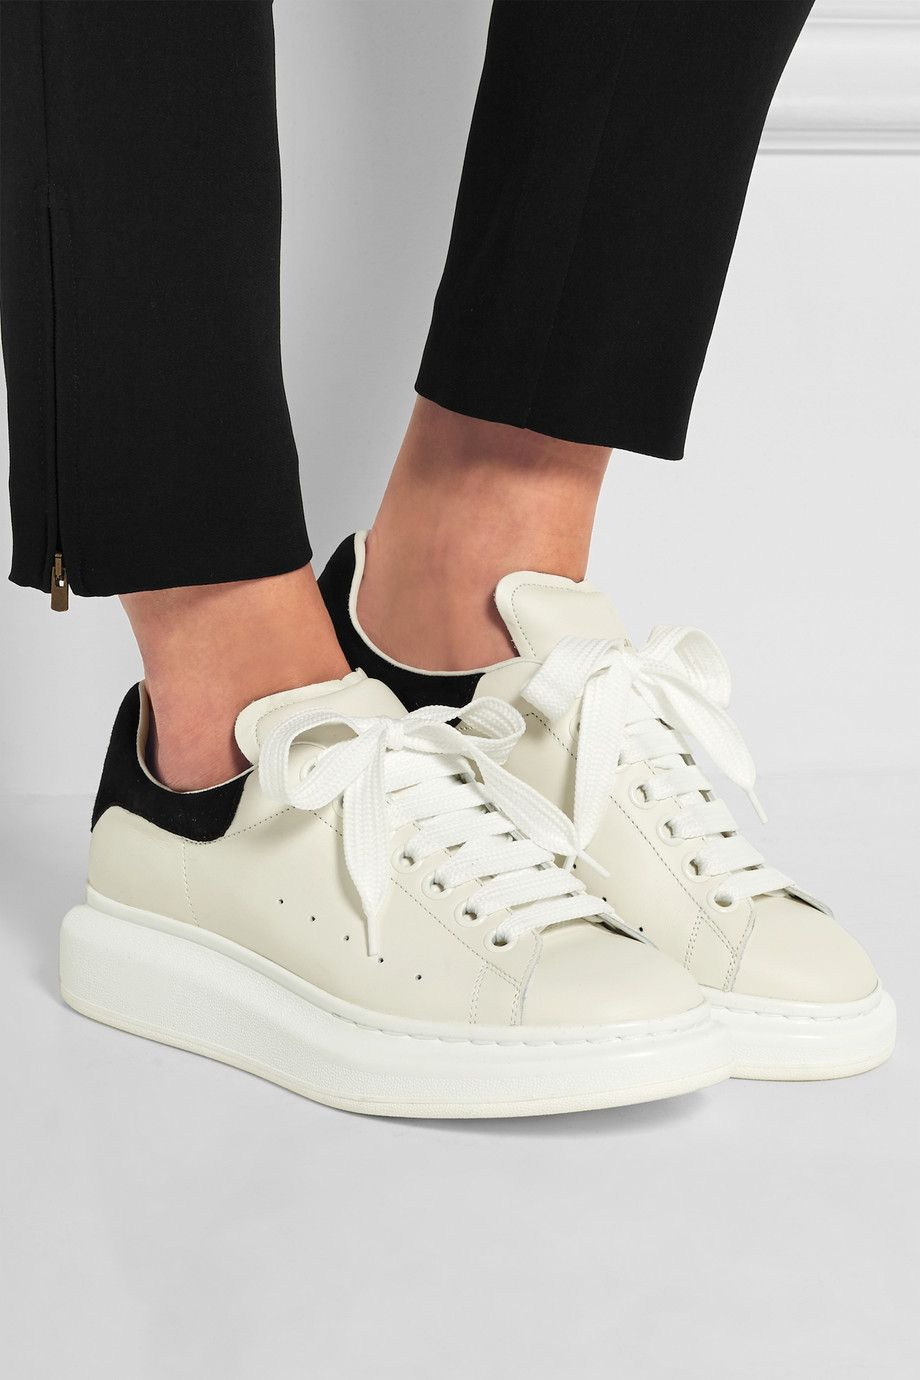 8f6a2eff71228e Alexander McQueen | Leather and suede exaggerated-sole sneakers |  NET-A-PORTER.COM